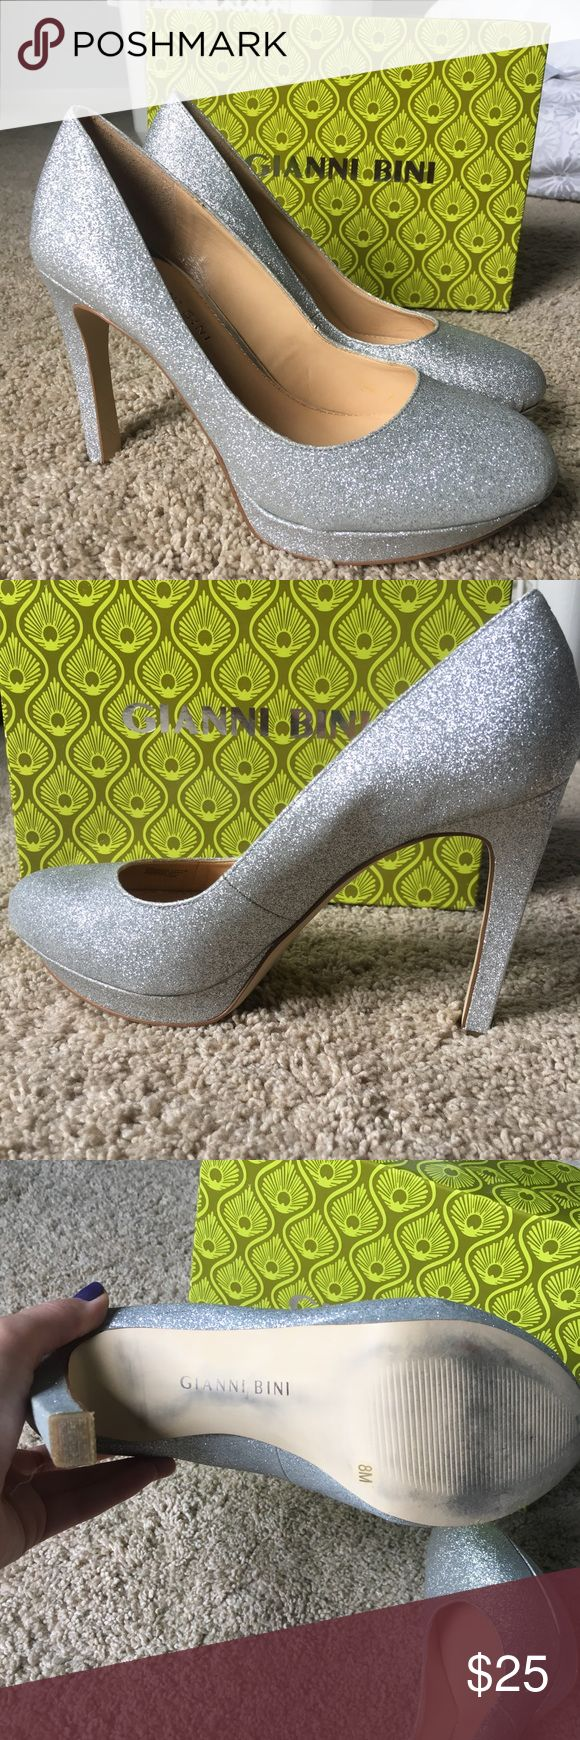 Gianni Bini silver sparkle heels Cute closed-toe heels gently used (only worn twice). Size 8M. Scuffs only on bottoms of the shoe. Gianni Bini Shoes Heels